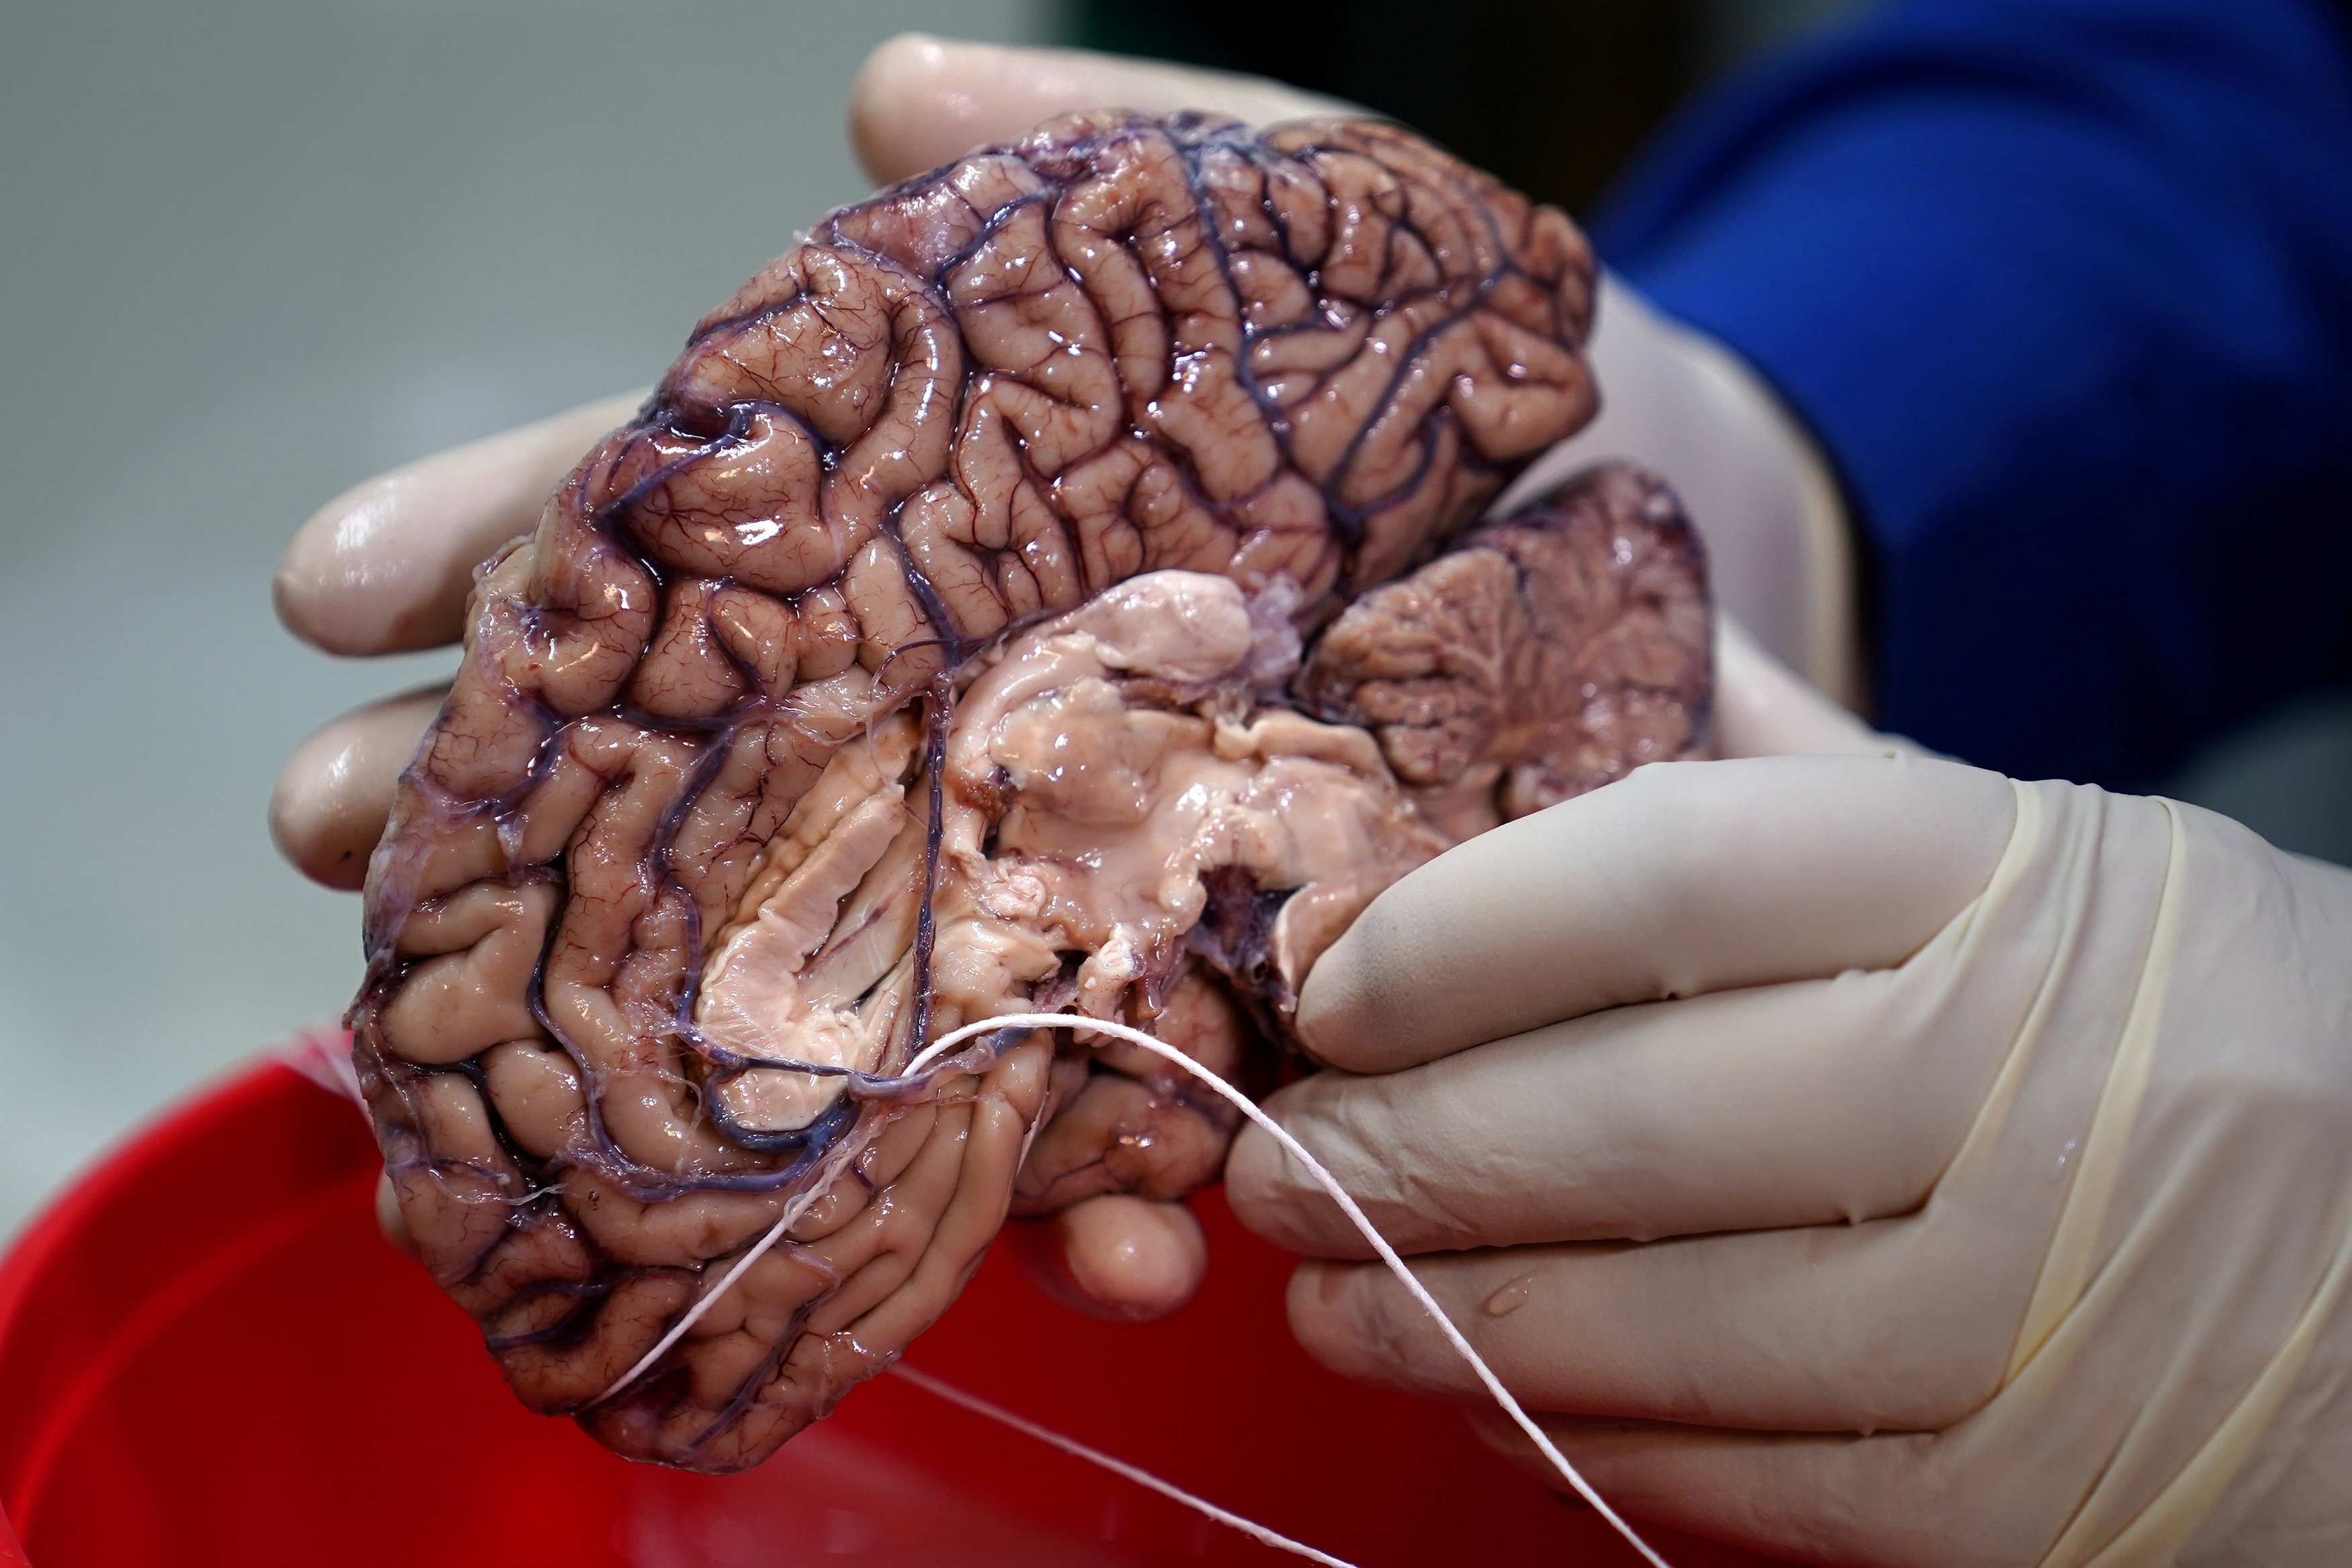 FILE PHOTO: A doctor holds a human brain in a brain bank in the Bronx borough of New York City, New York, US June 28, 2017. Credit: Reuters/Carlo